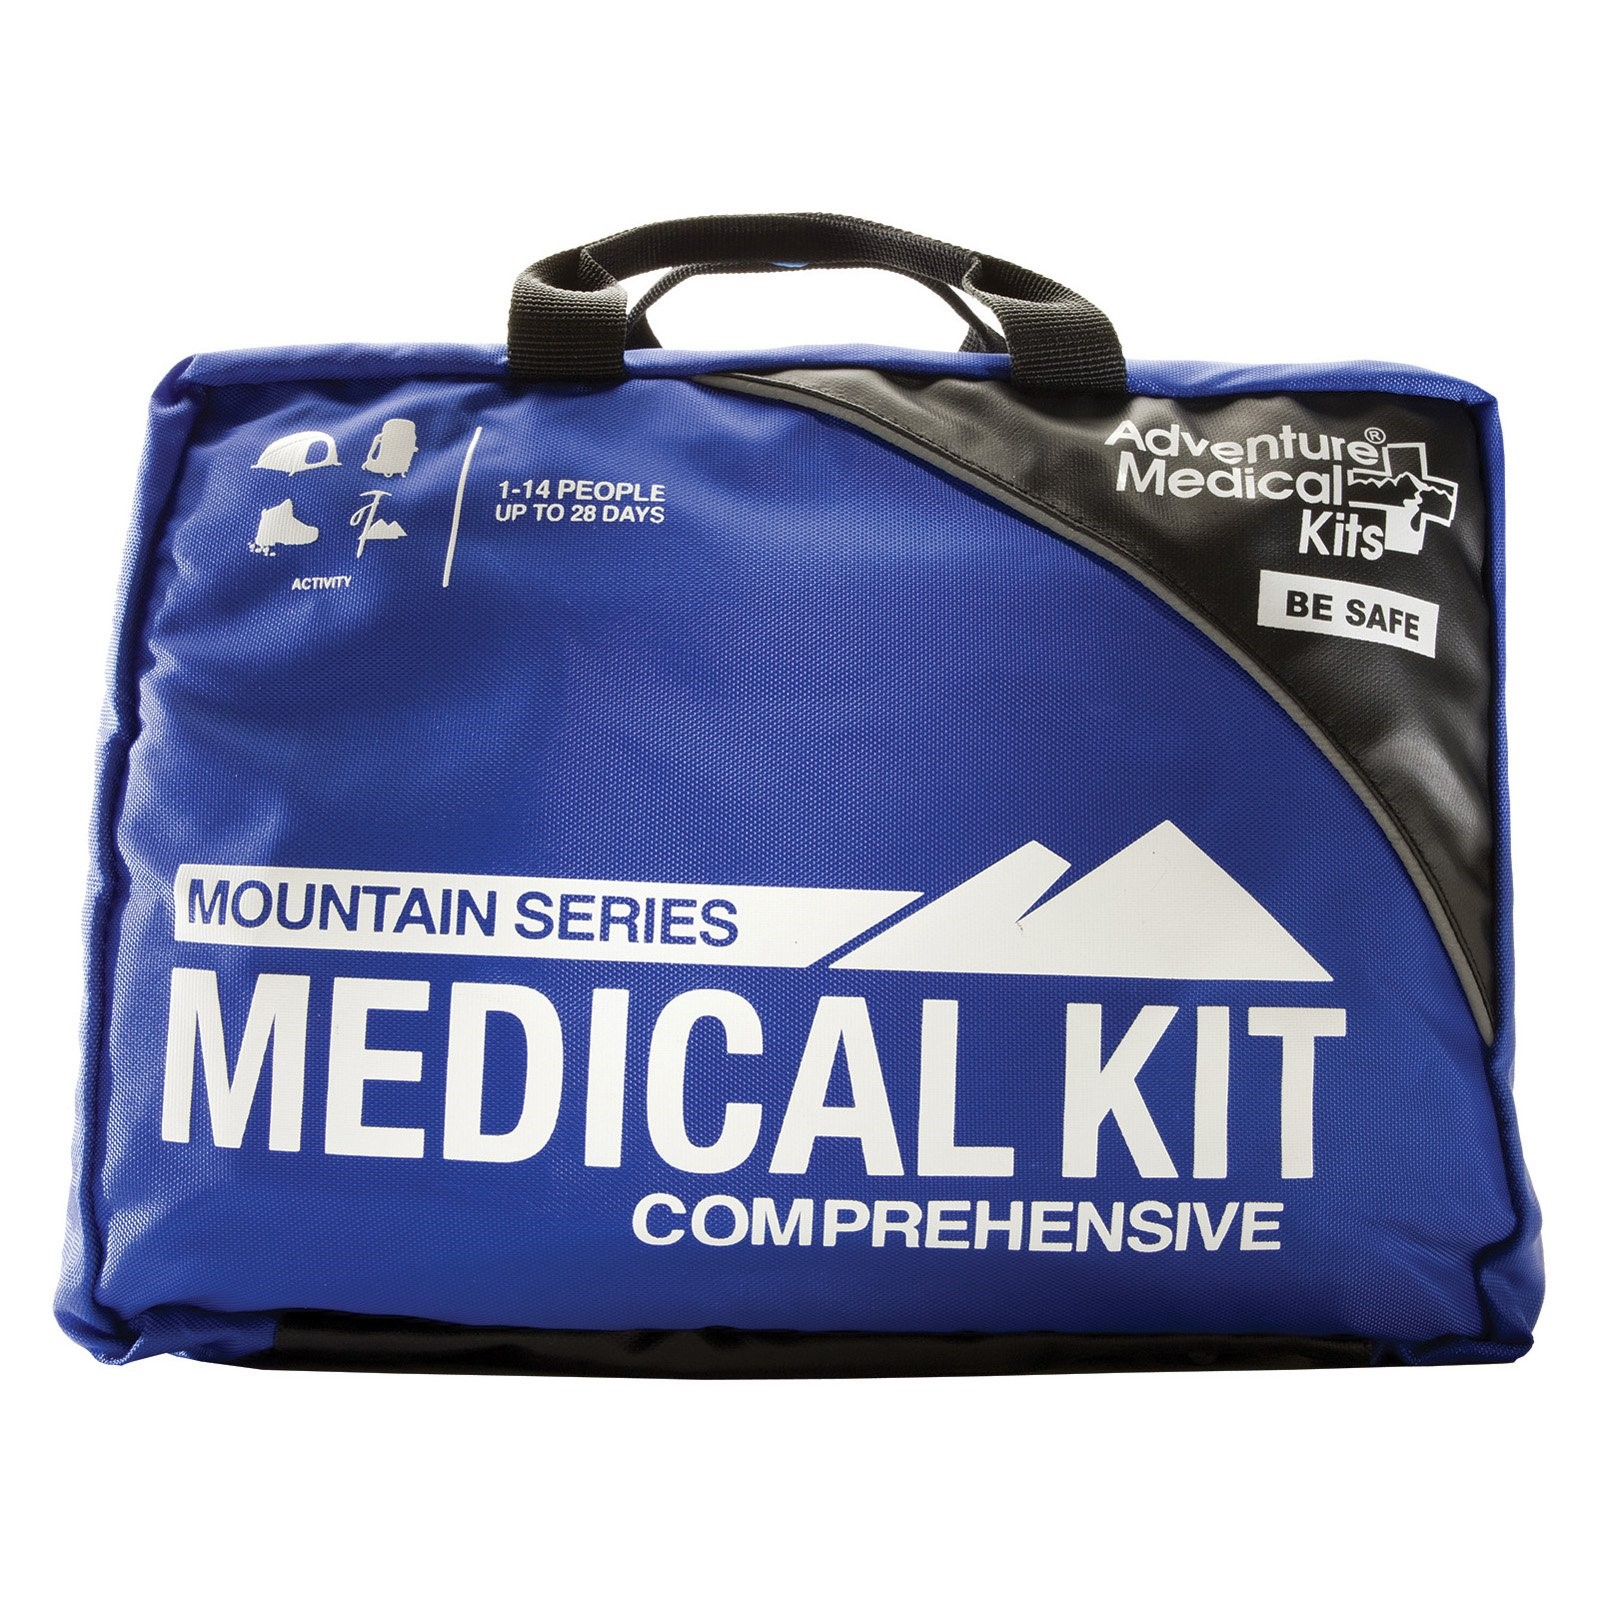 Easy Care Medical Kit, Mountain Comprehensive